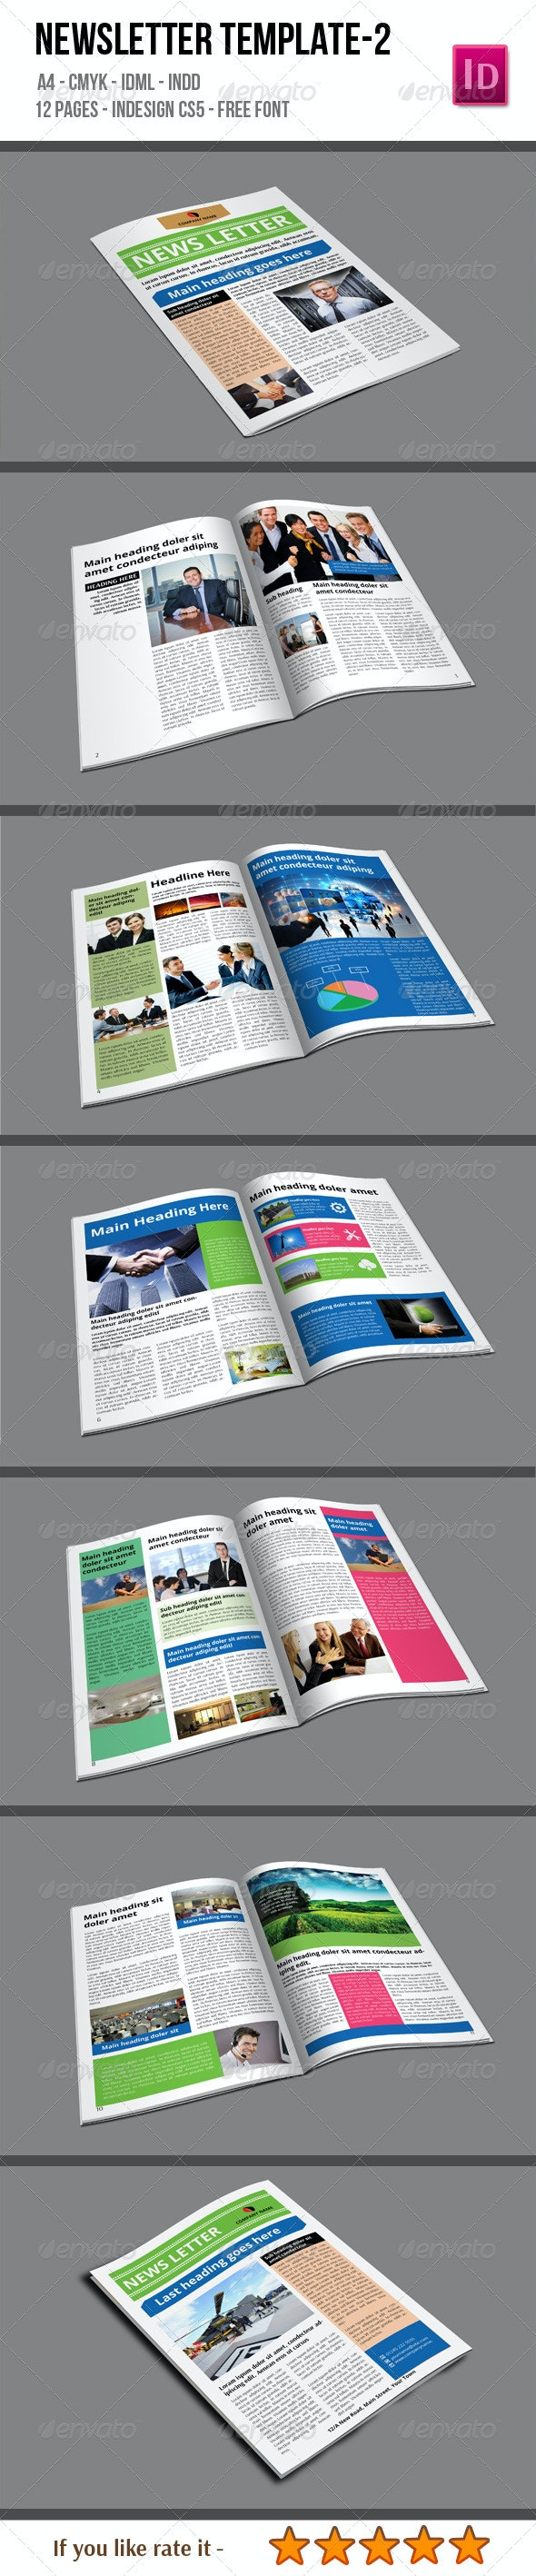 Newsletter Template-2 - Newsletters Print Templates